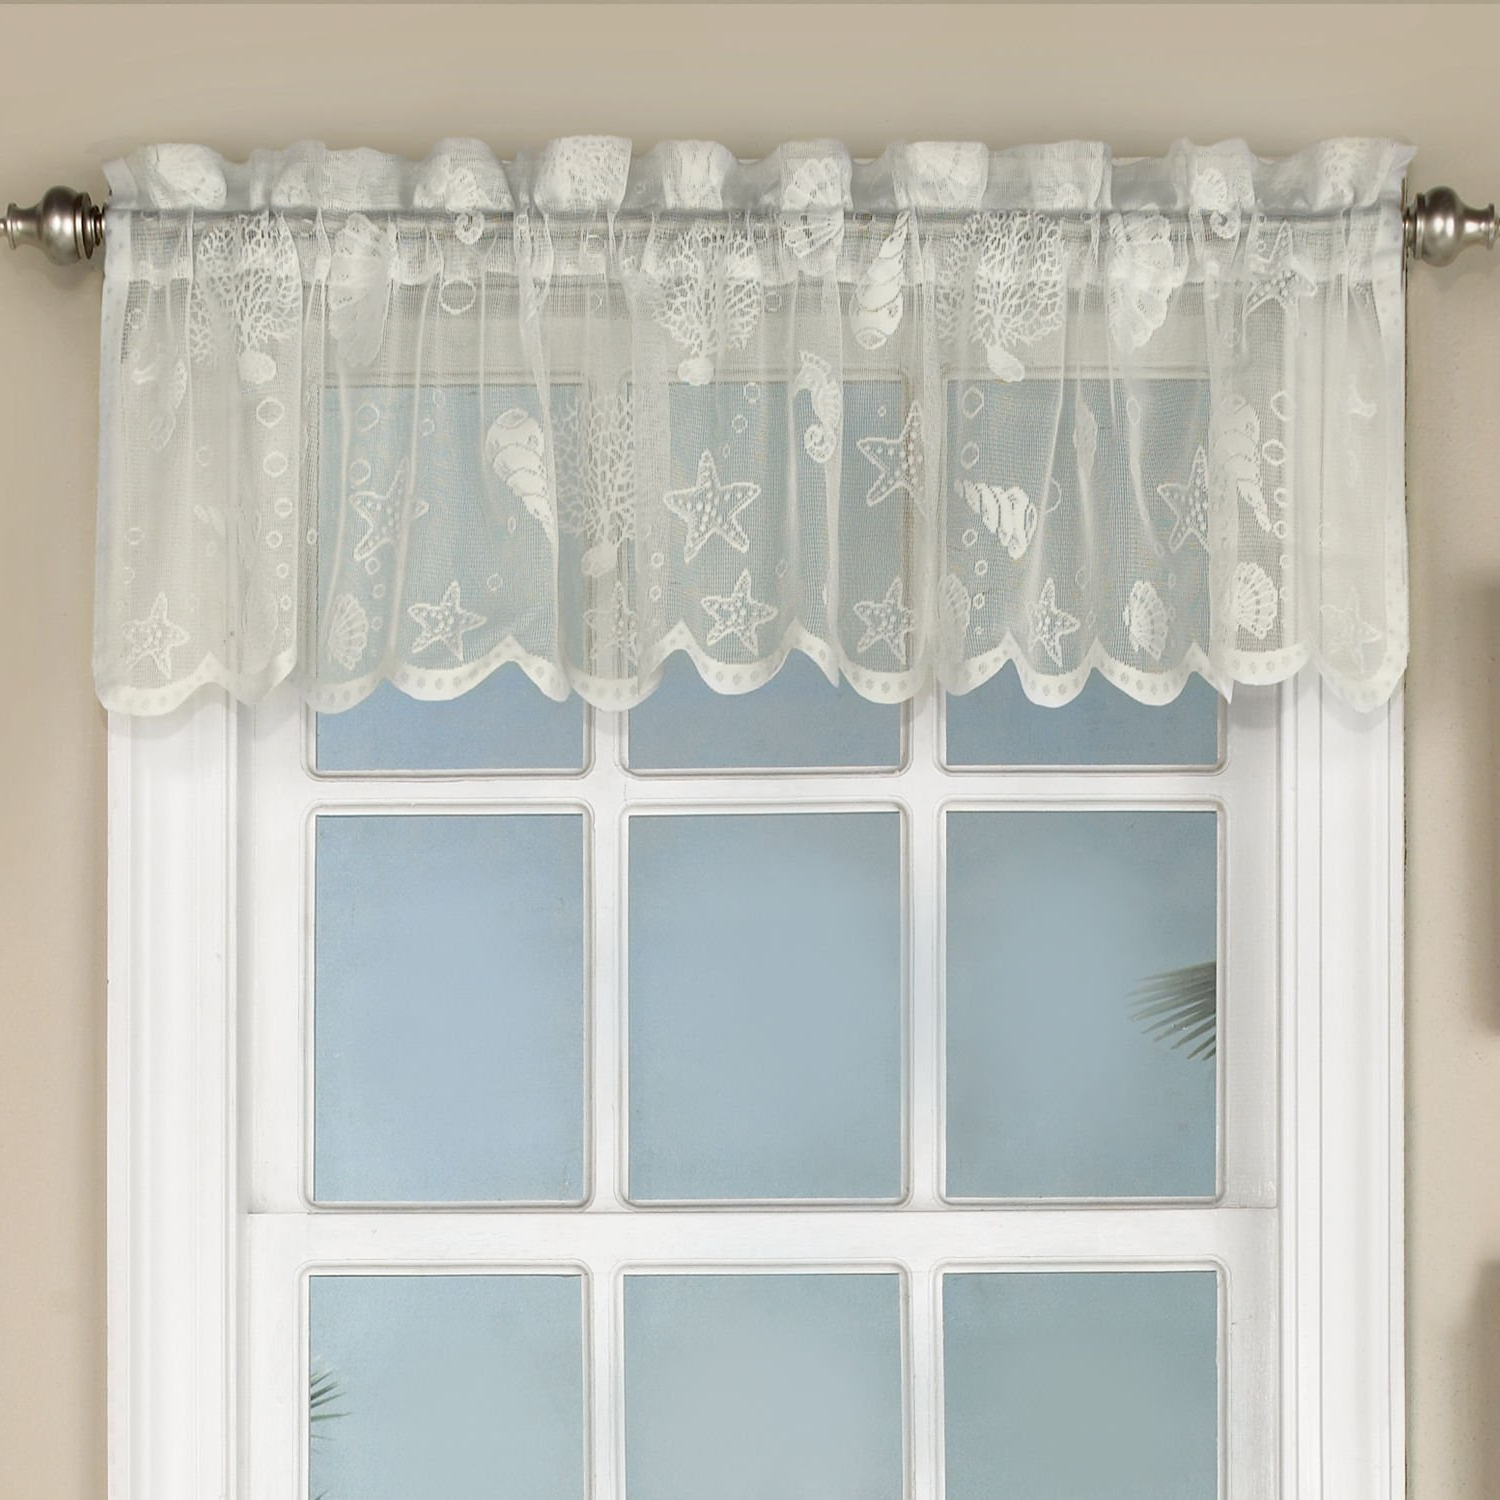 Cheap White Lace Kitchen Curtains, Find White Lace Kitchen Inside Current French Vanilla Country Style Curtain Parts With White Daisy Lace Accent (View 3 of 20)